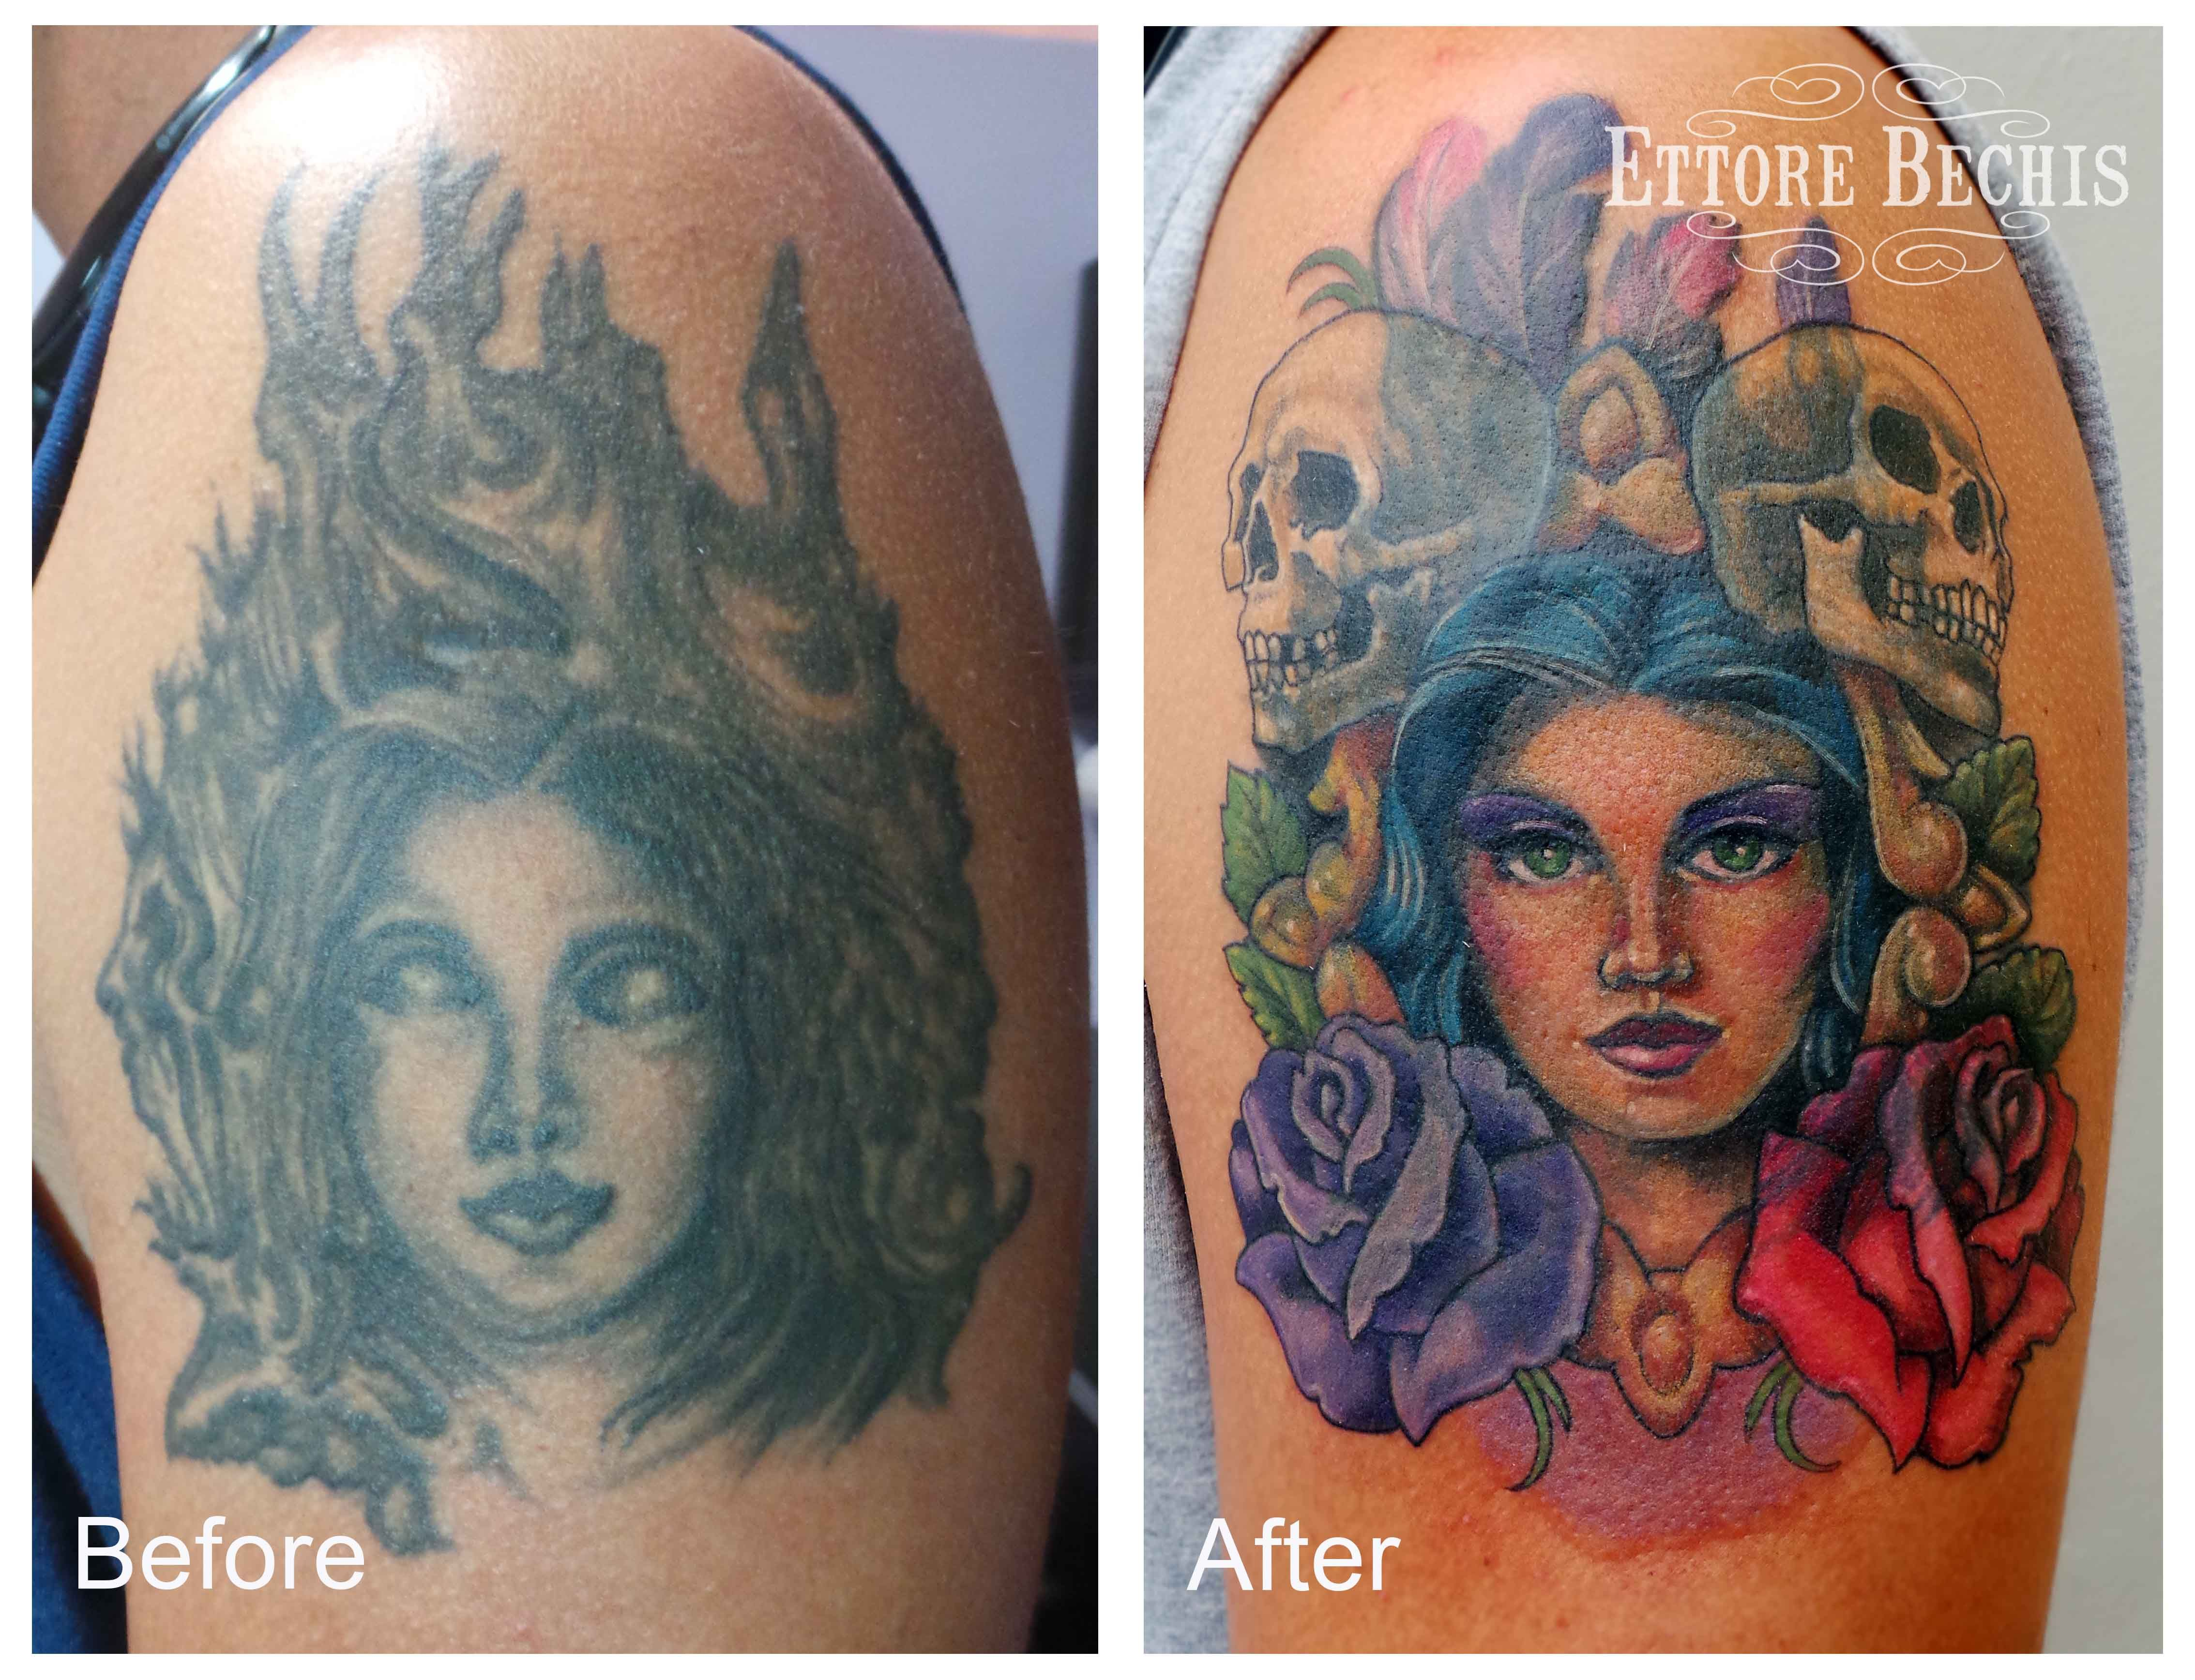 www.ettore-bechis.com Best Miami tattoo shop cover up,woman,tattoo ...